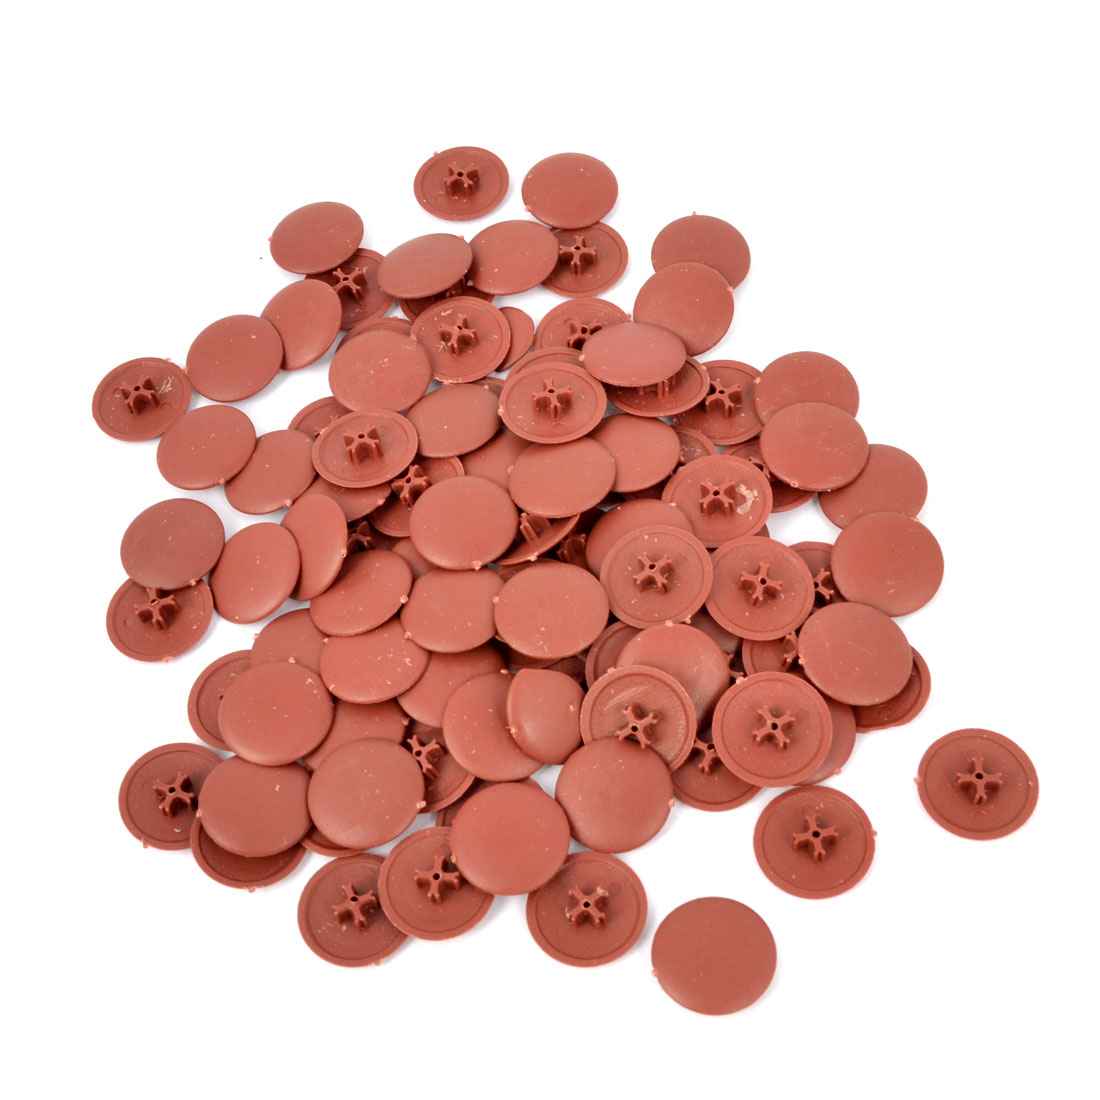 100pcs Press Fit Pozi Phillips Screw Cover Caps Brown - image 1 of 1